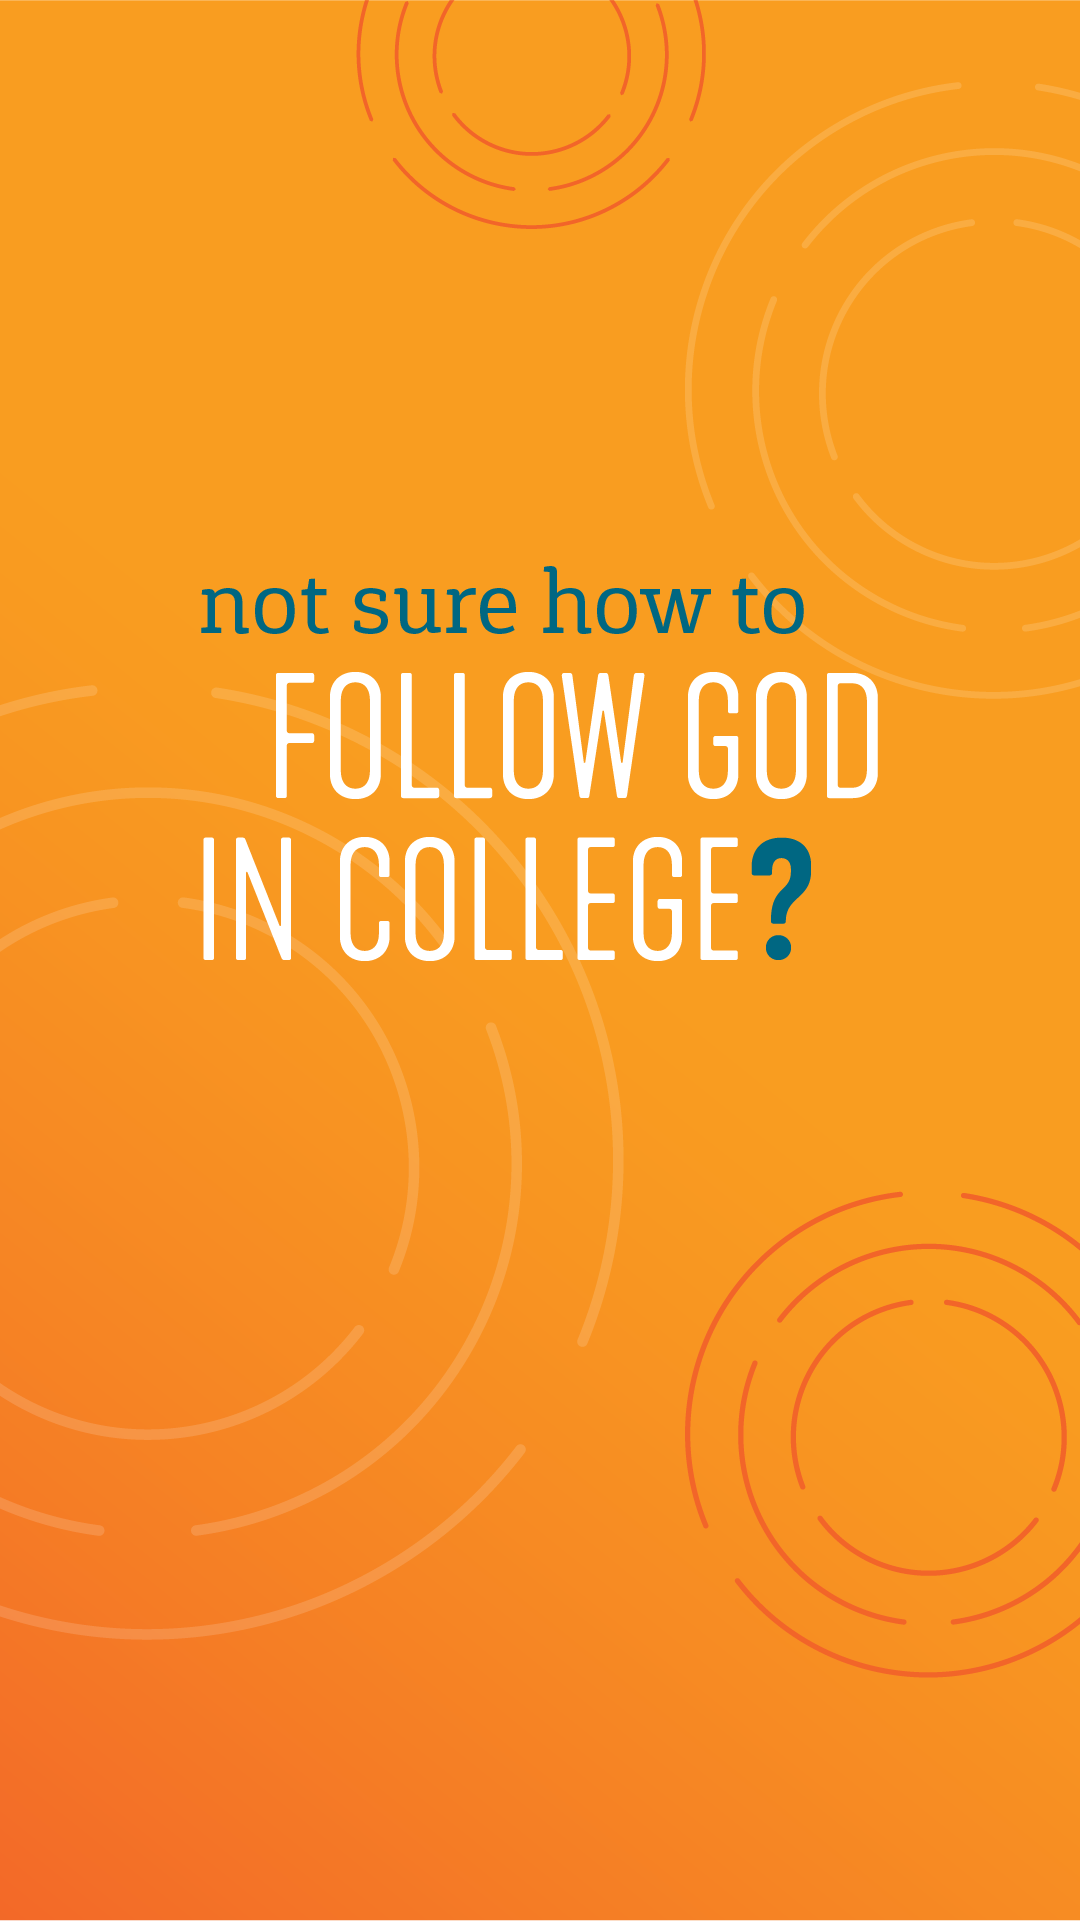 Not Sure How to Follow God in College?